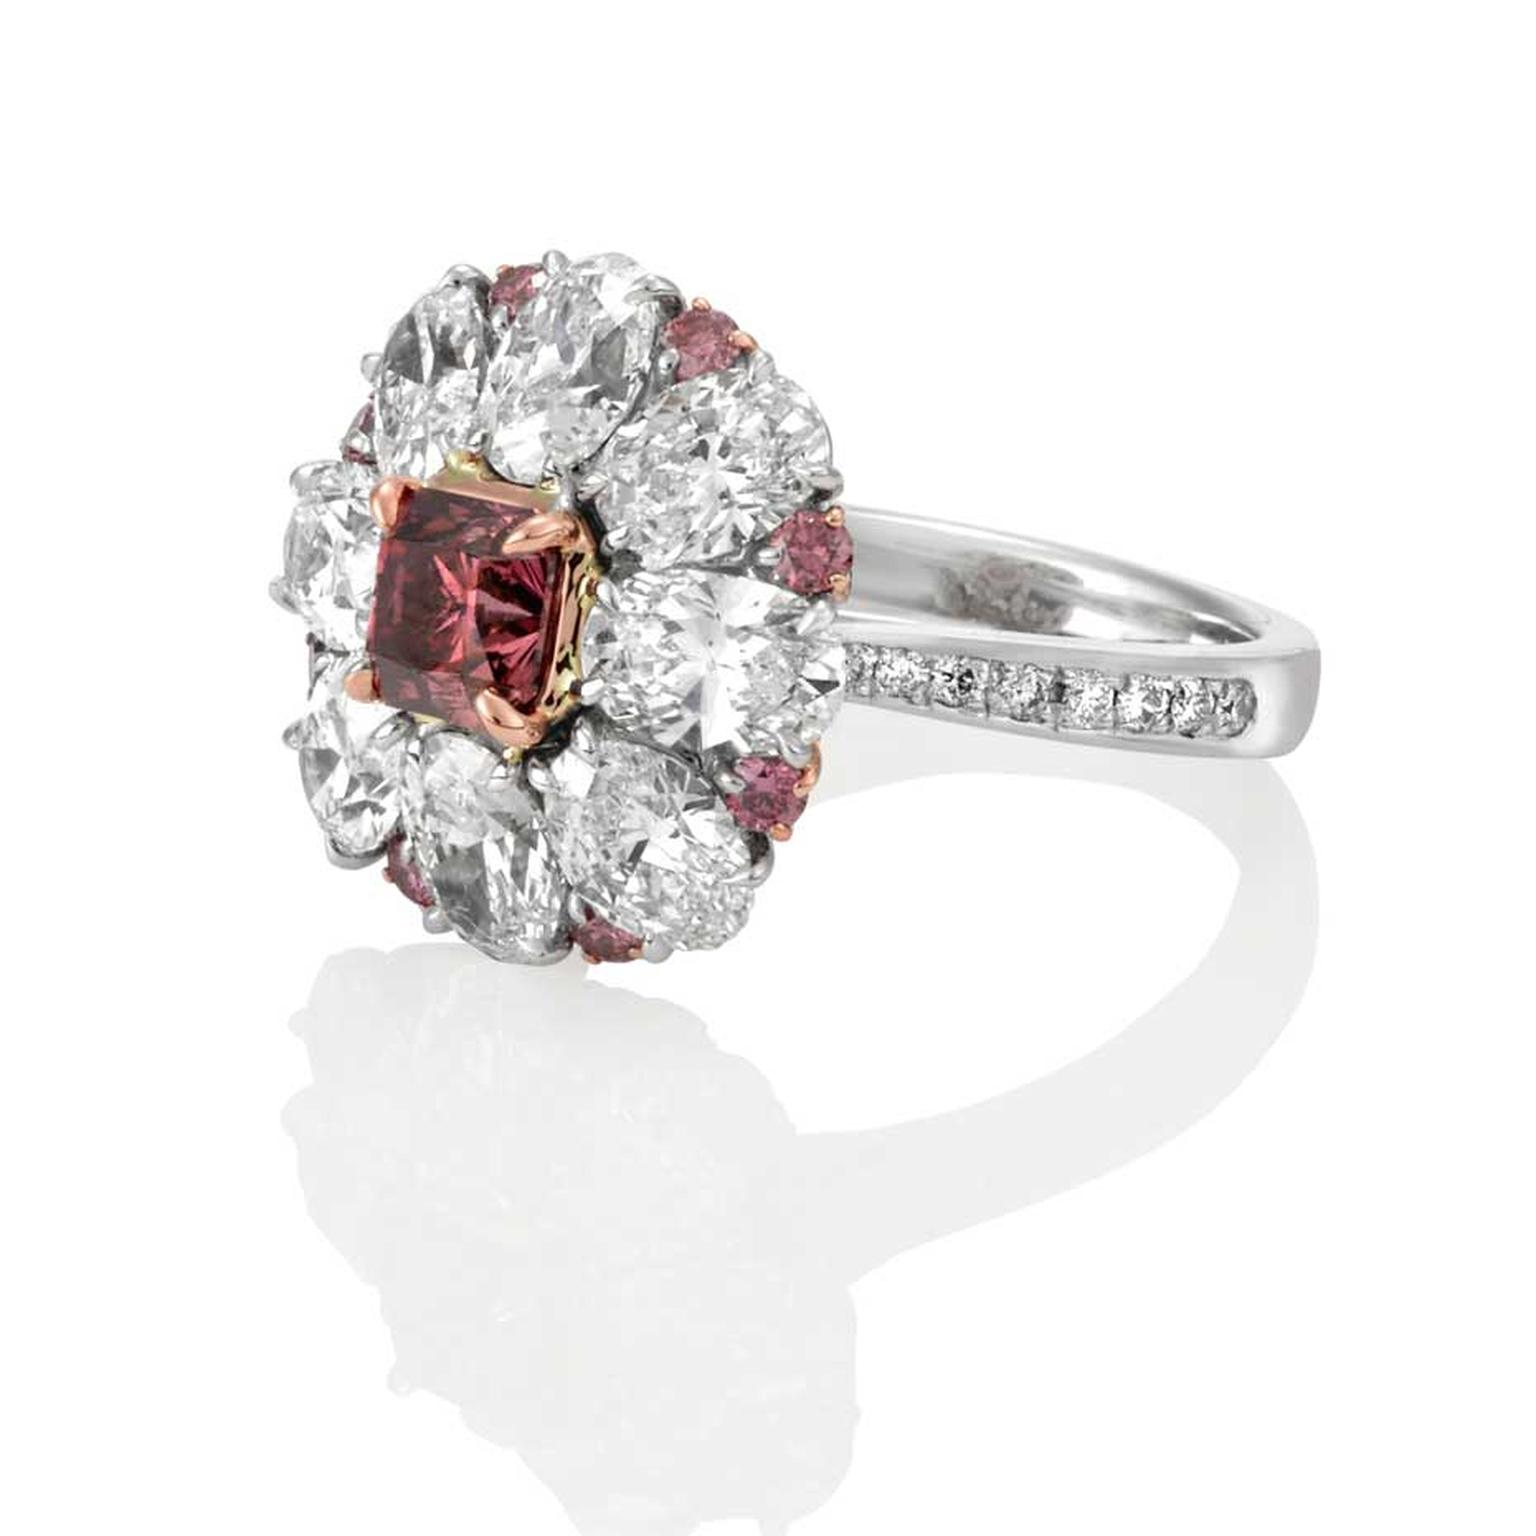 Argyle pink diamonds: the radiant, romantic and rare gems from Western Australia